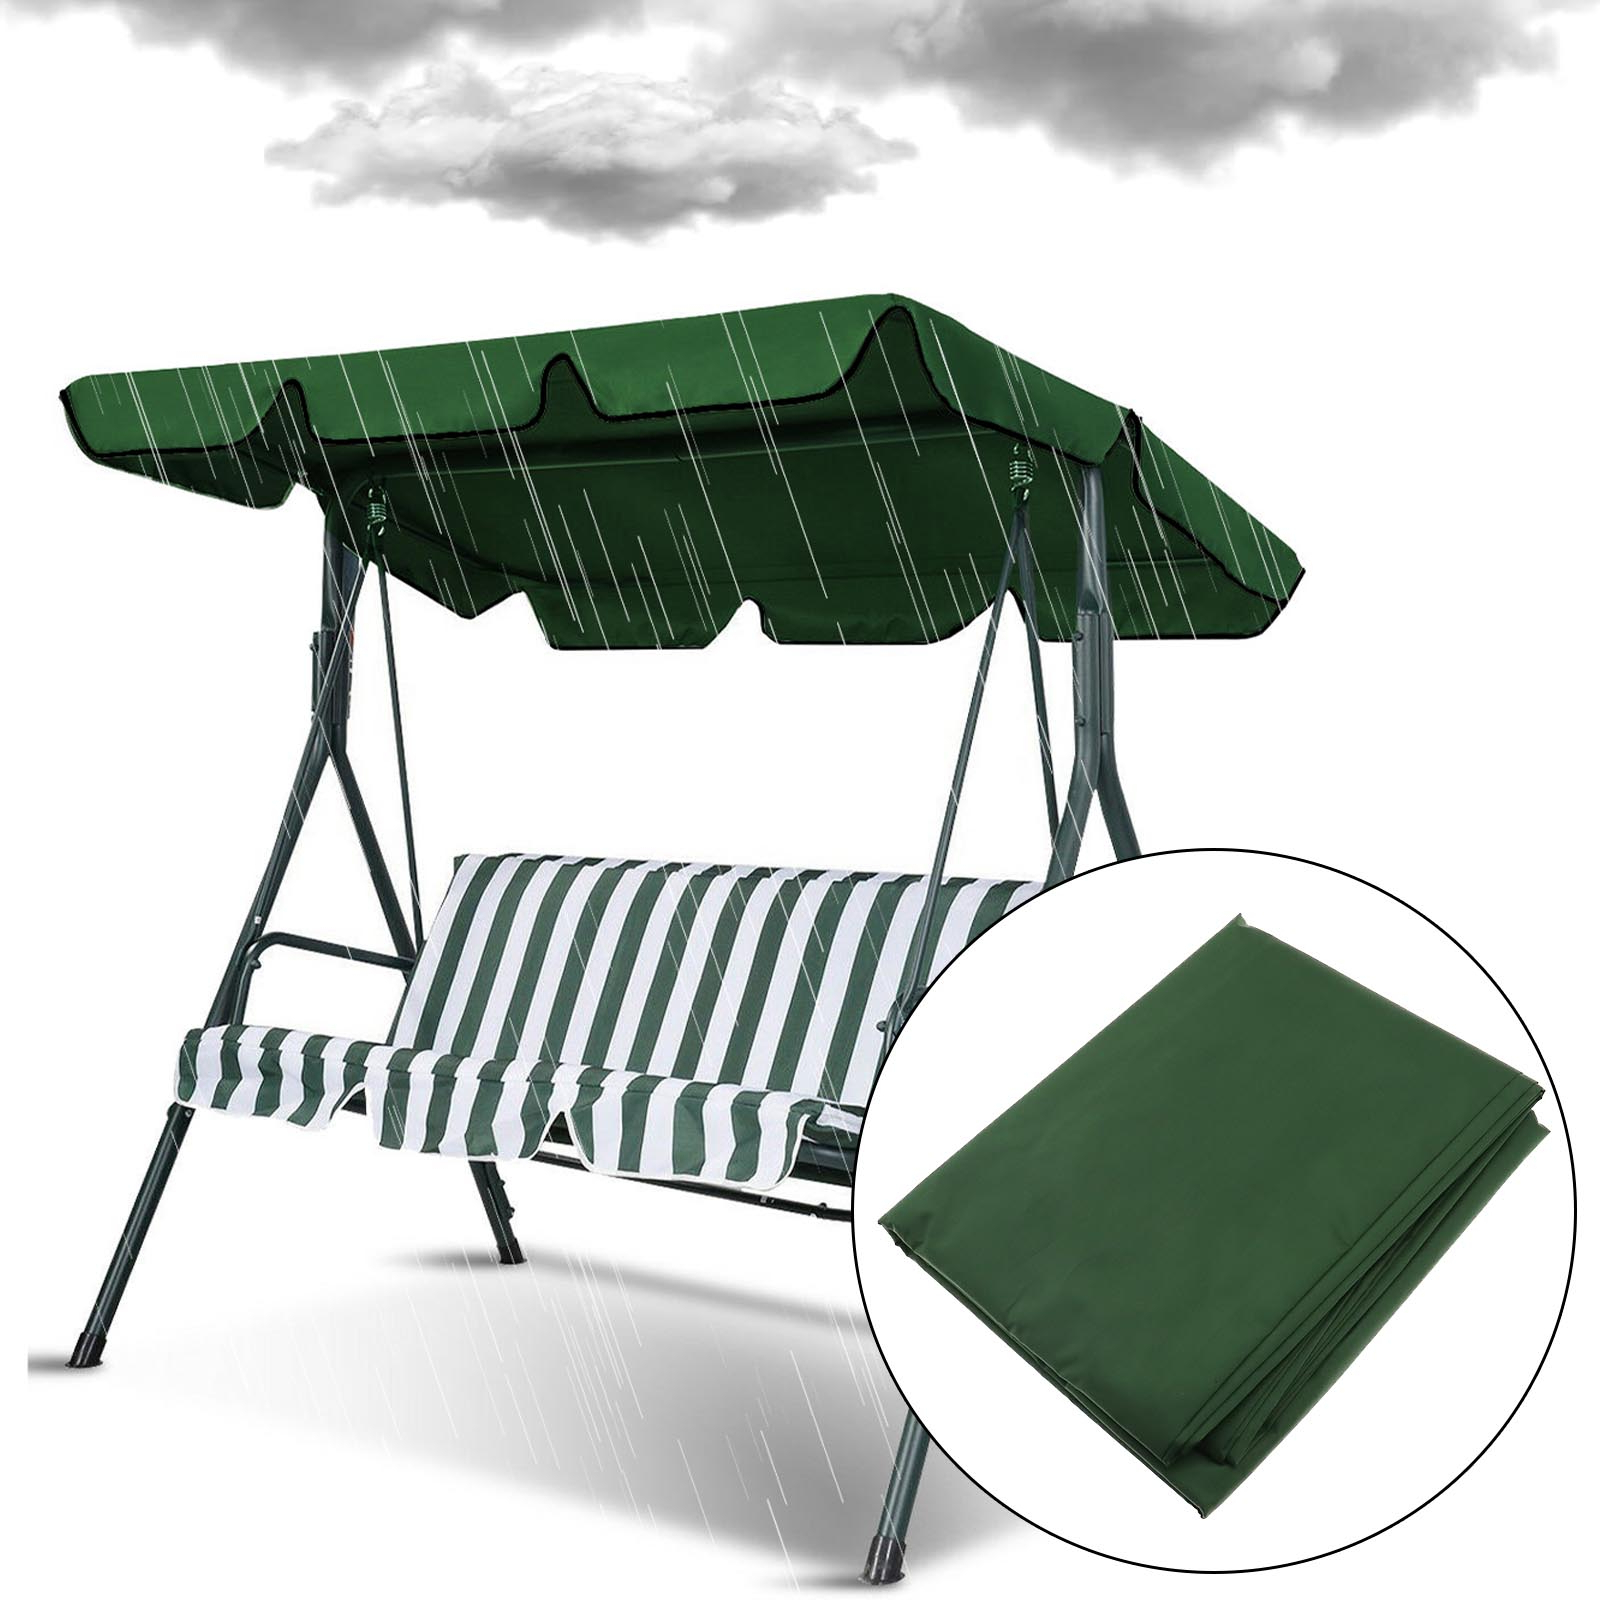 2 Person Hammock Porch Swing Patio Outdoor Hanging Loveseat Canopy Glider Swings With Regard To Well Liked Details About 2 Person Patio Garden Swing Outdoor Hammock Canopy Hanging Chair Cover Bench (View 7 of 30)